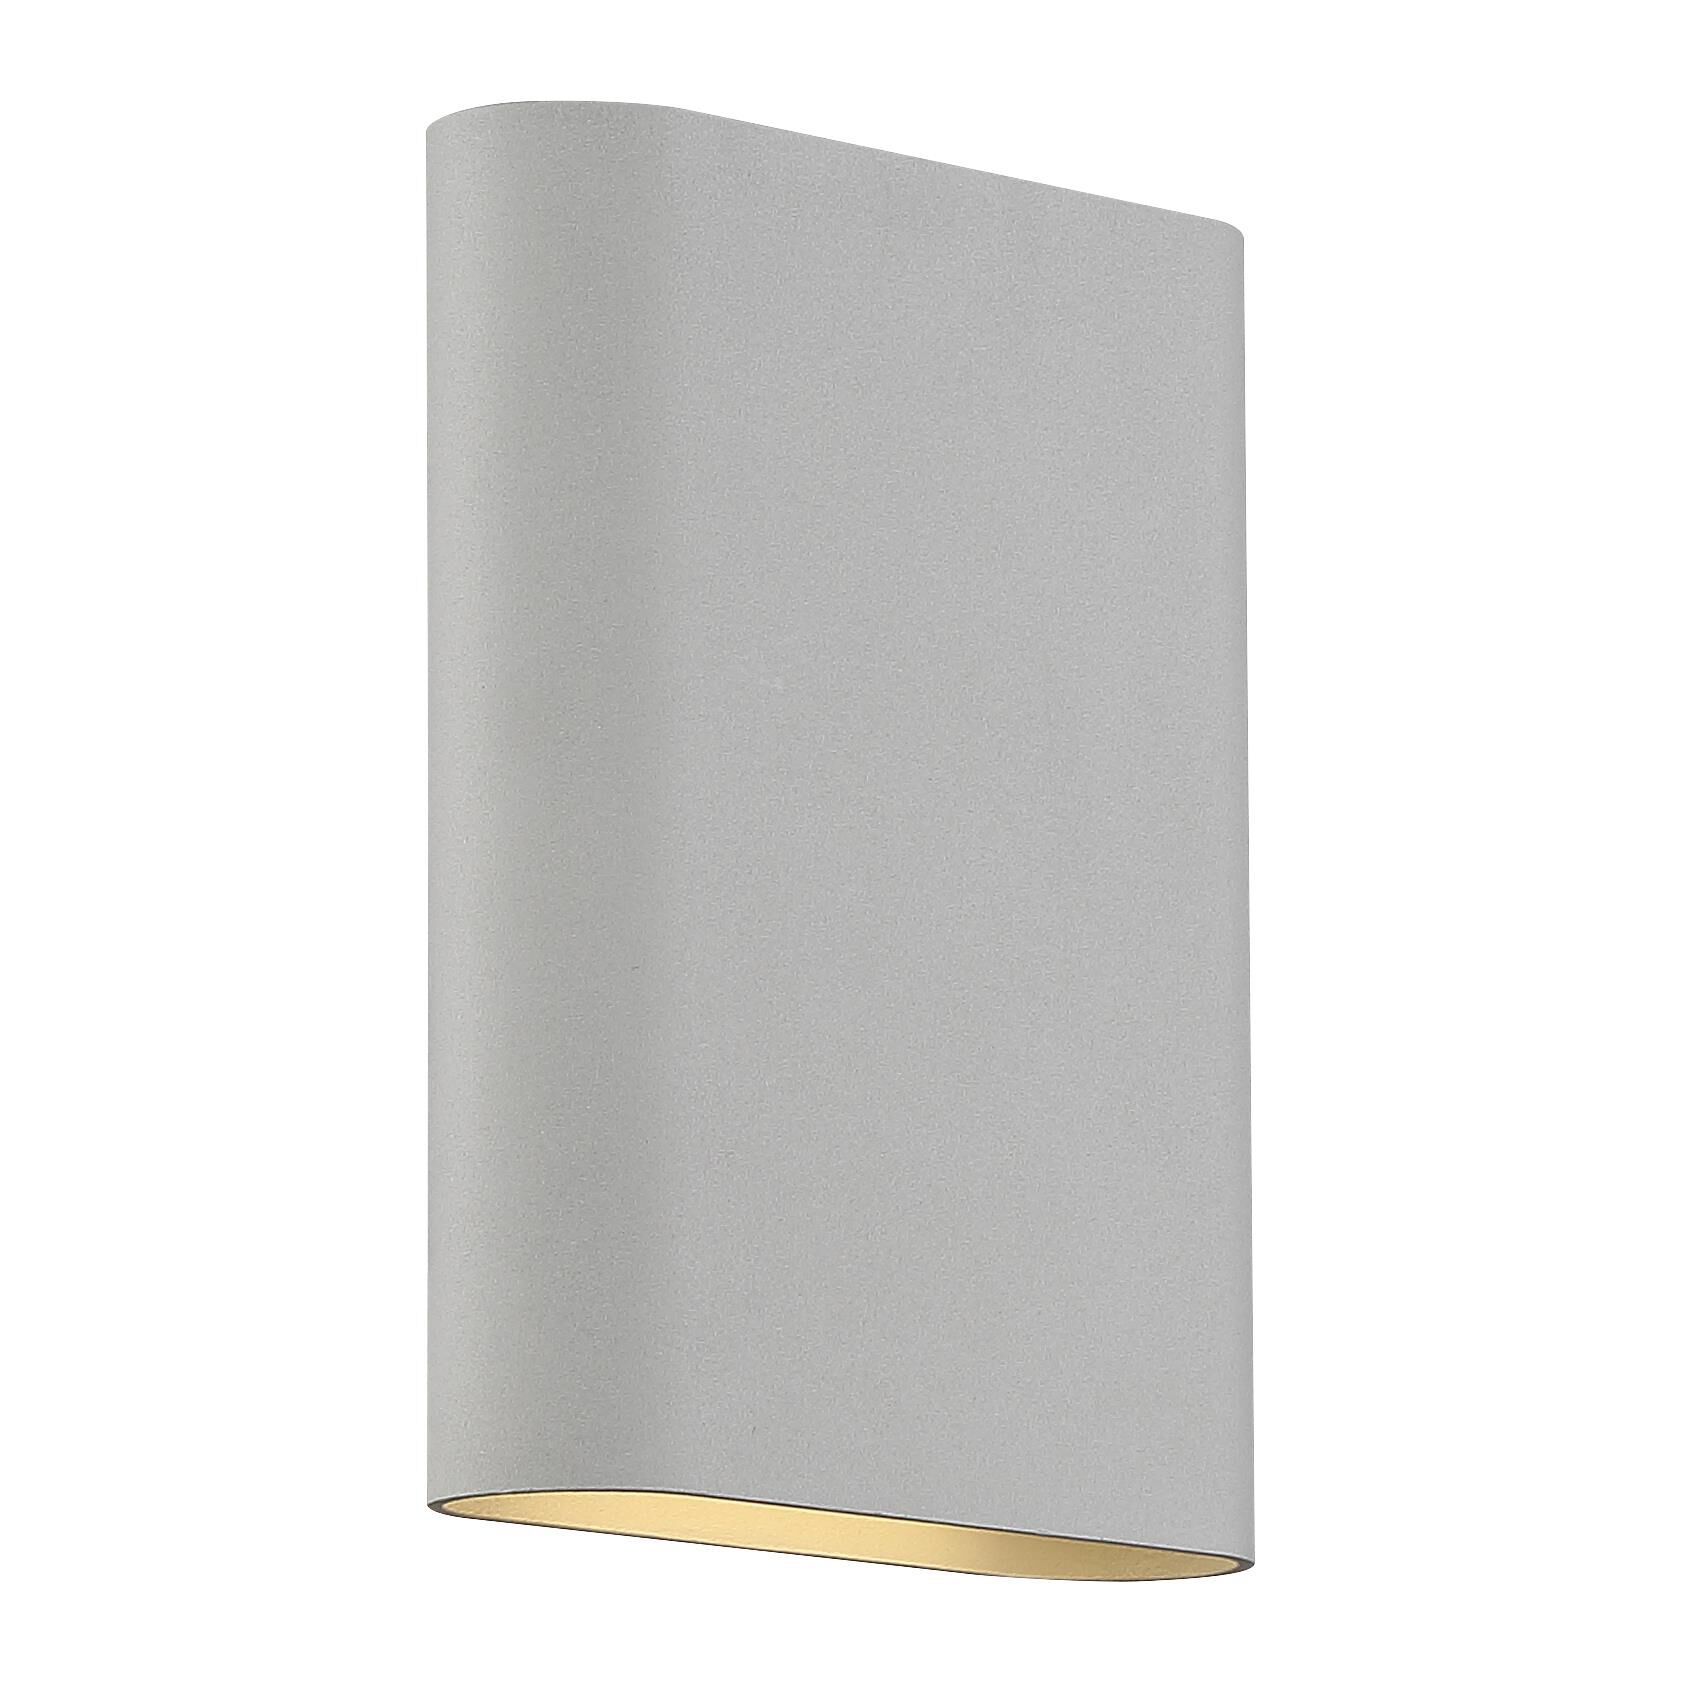 Access Lighting Lux 8 Inch LED Wall Sconce Lux 20408LEDD SAT Modern Contemporary